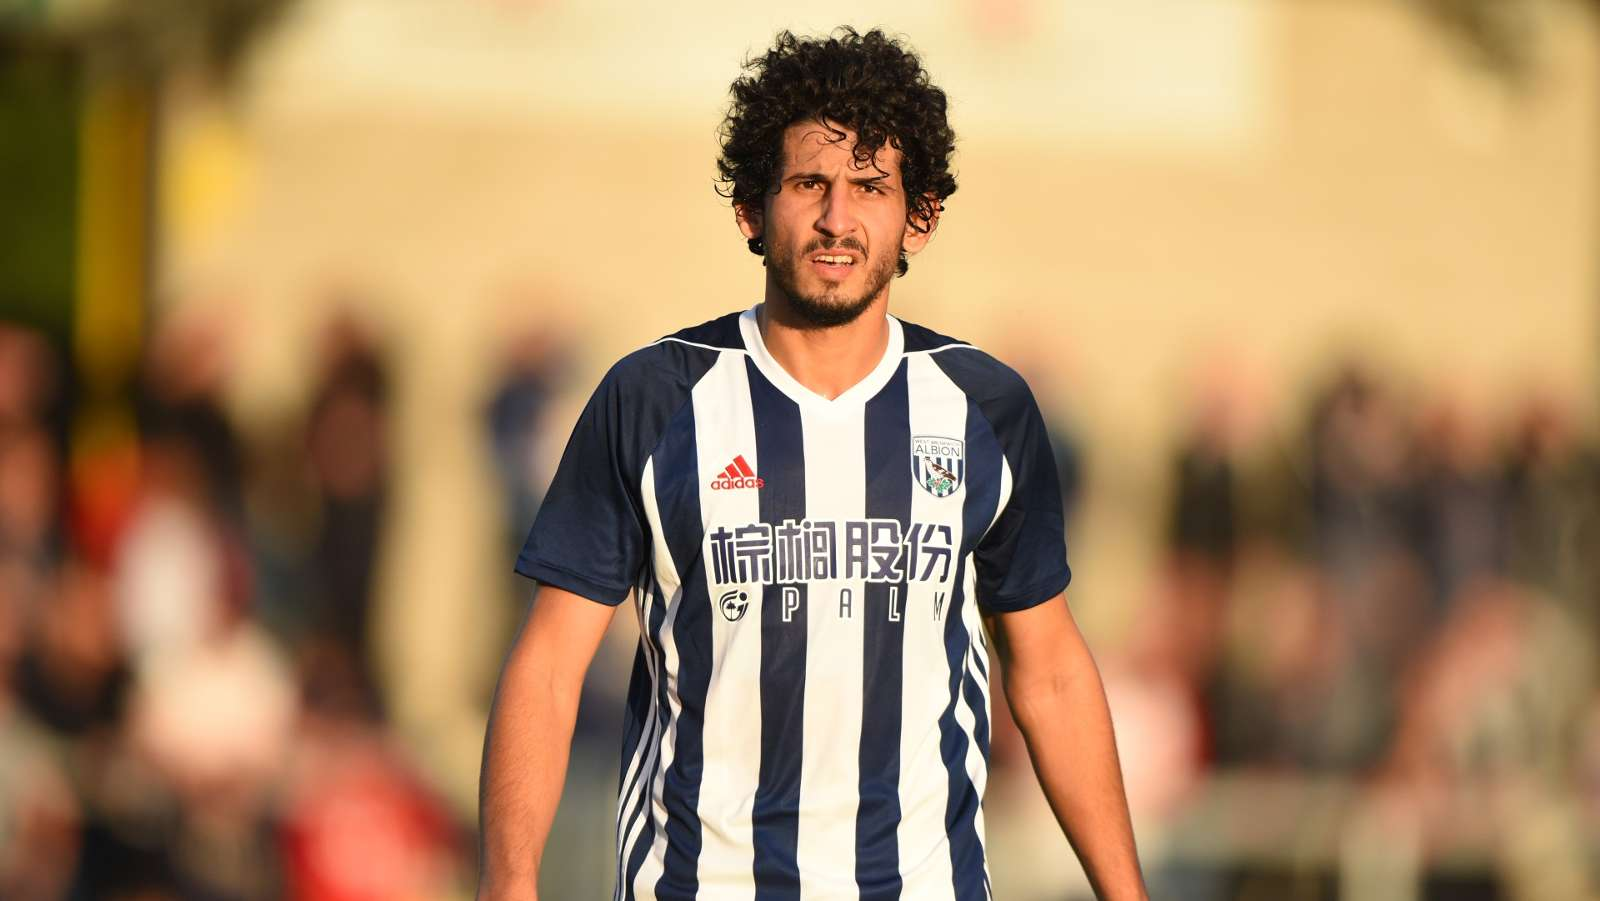 https://images.performgroup.com/di/library/GOAL/1a/70/ahmed-hegazy-of-west-bromwich-albion_v701j0wr72171nigprbm1zu3u.jpg?t=-1691202939&quality=60&w=1600